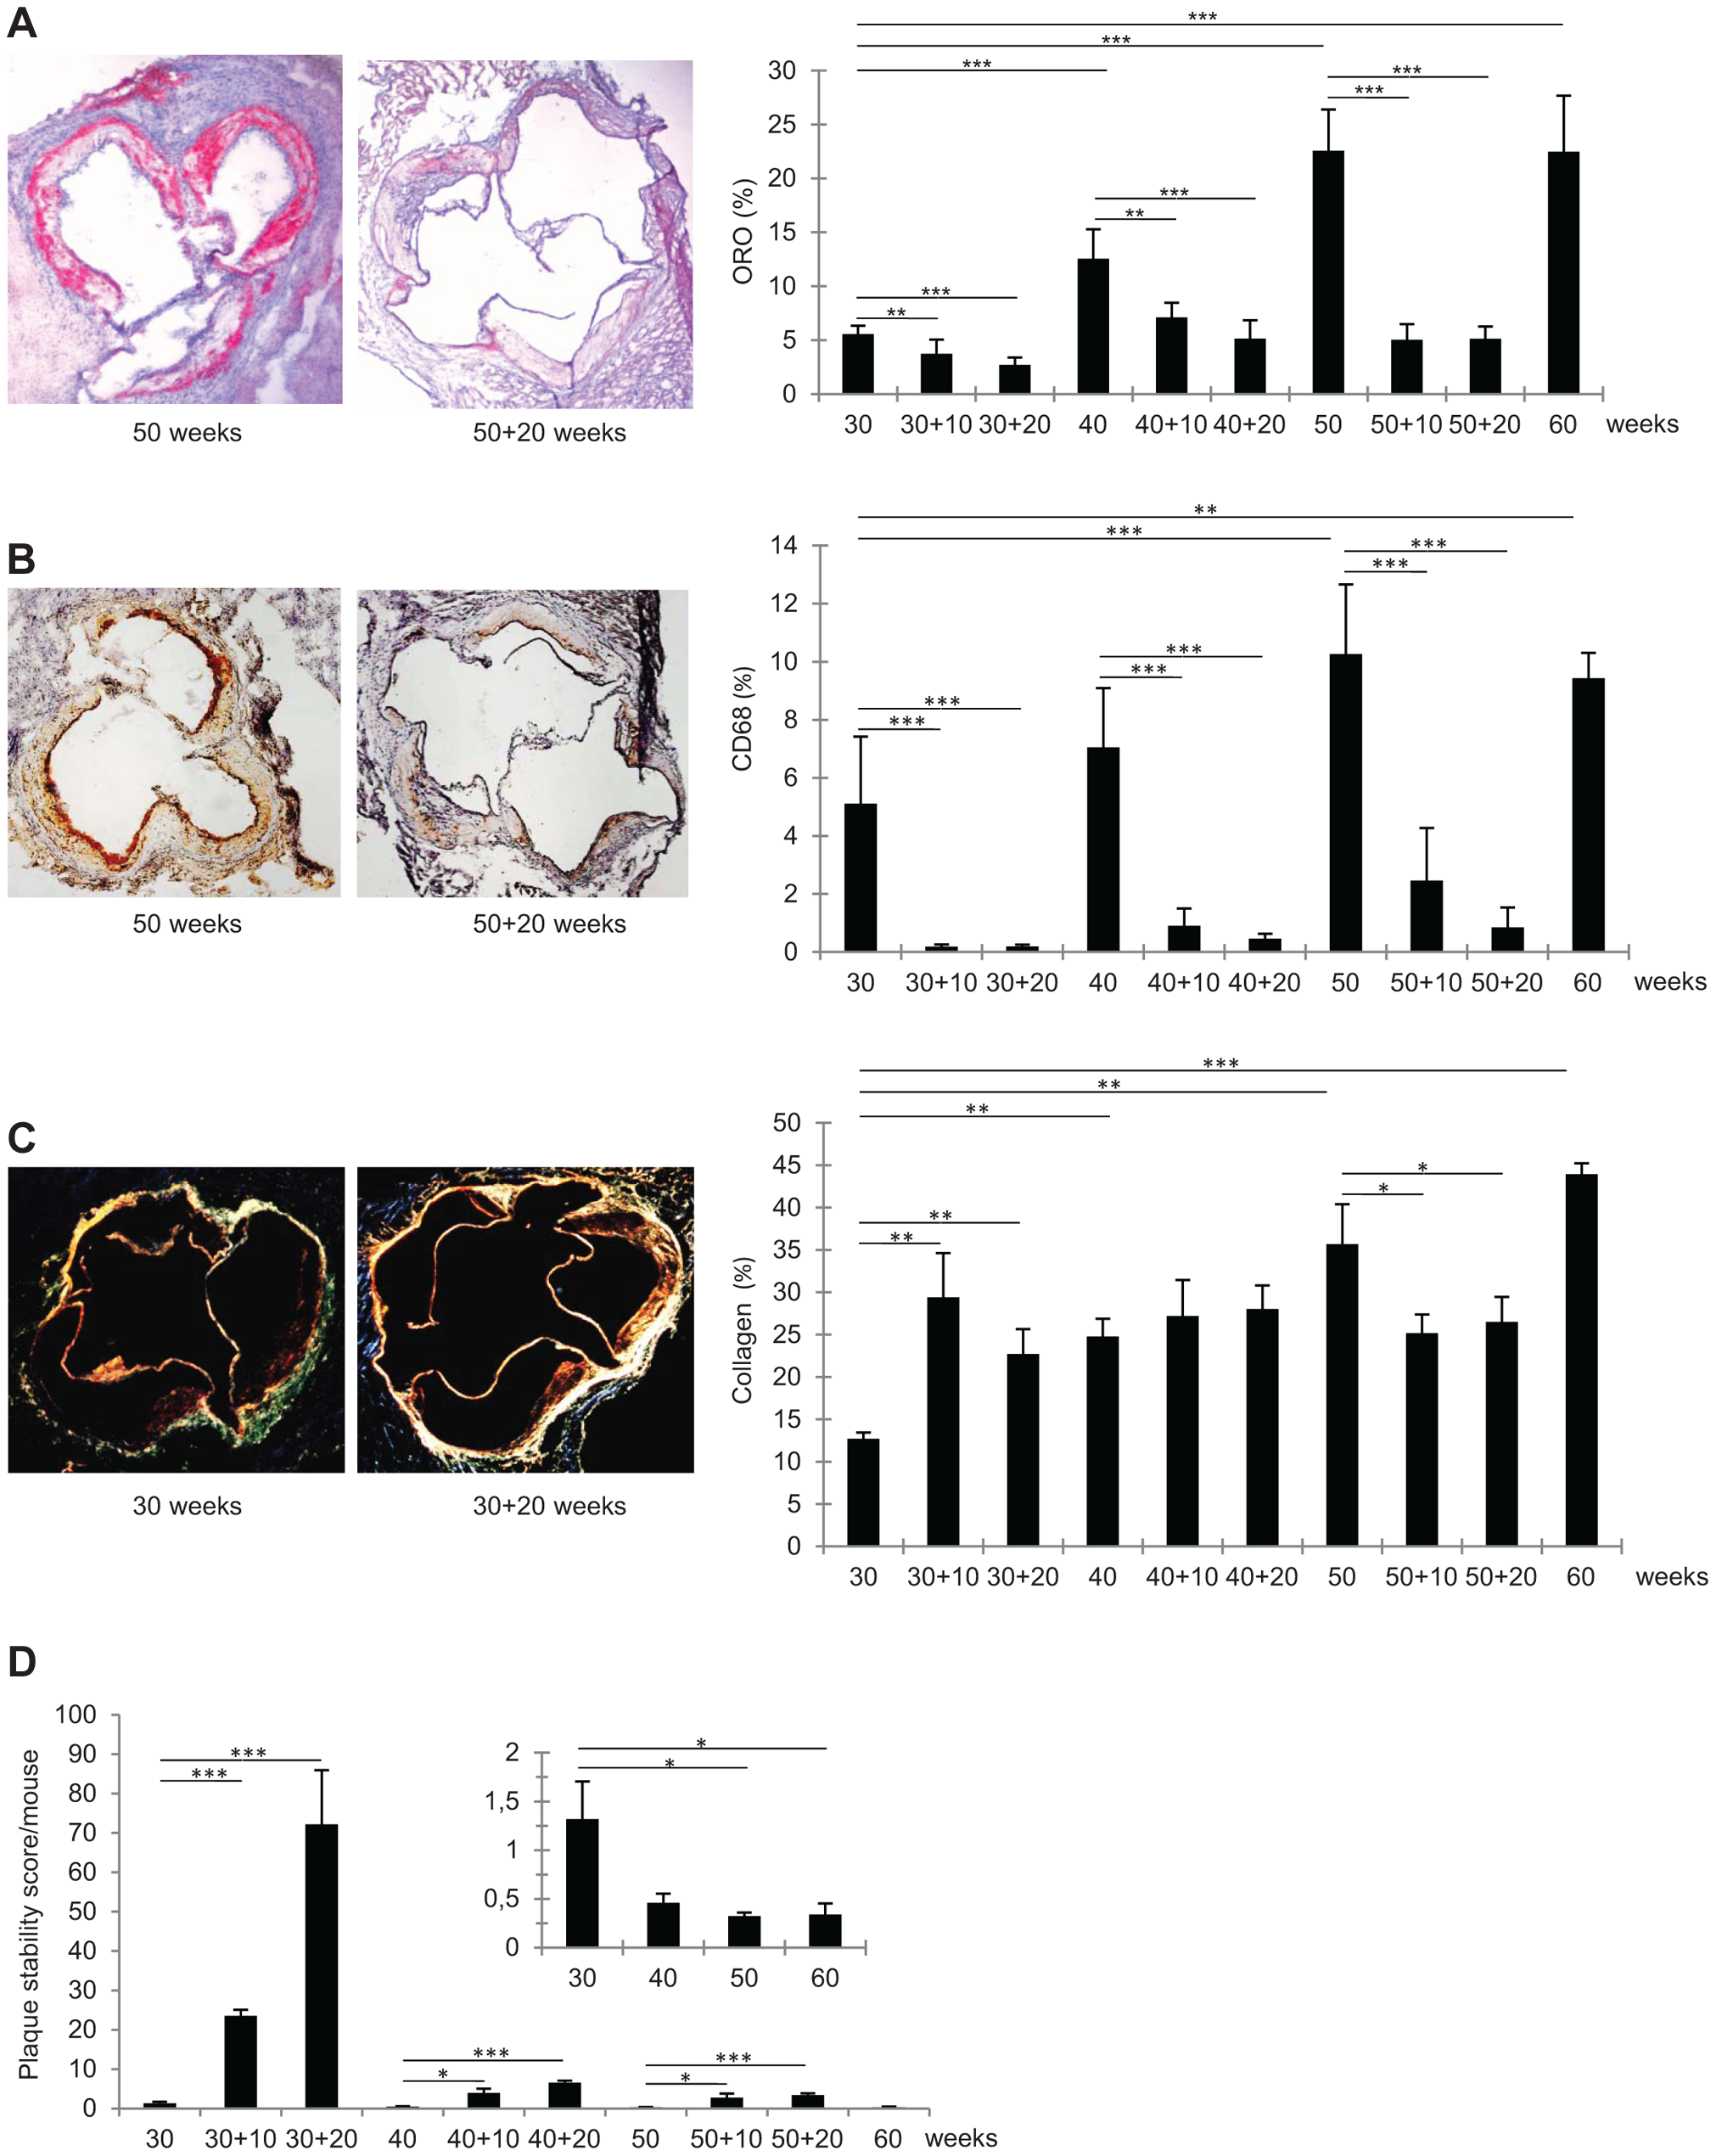 Immunohistochemical characteristics of representative frozen sections of aortic roots from <i>Ldlr<sup>−/−</sup>Apob</i><sup>100/100</sup><i>Mttp</i><sup>flox/flox</sup> and <i>Ldlr<sup>−/−</sup>Apob</i><sup>100/100</sup><i>Mttp</i><sup>Δ/Δ</sup> mice.